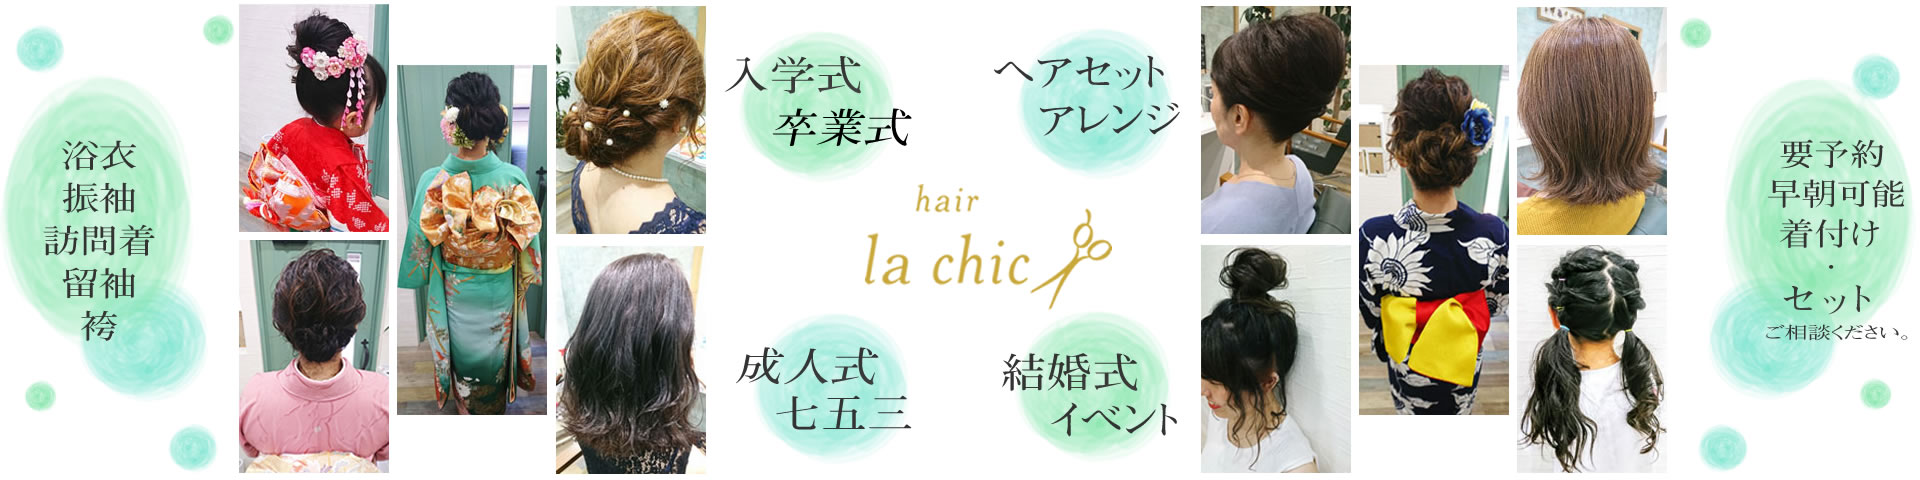 布施 美容室 hair la chic(ヘアー ラシック)